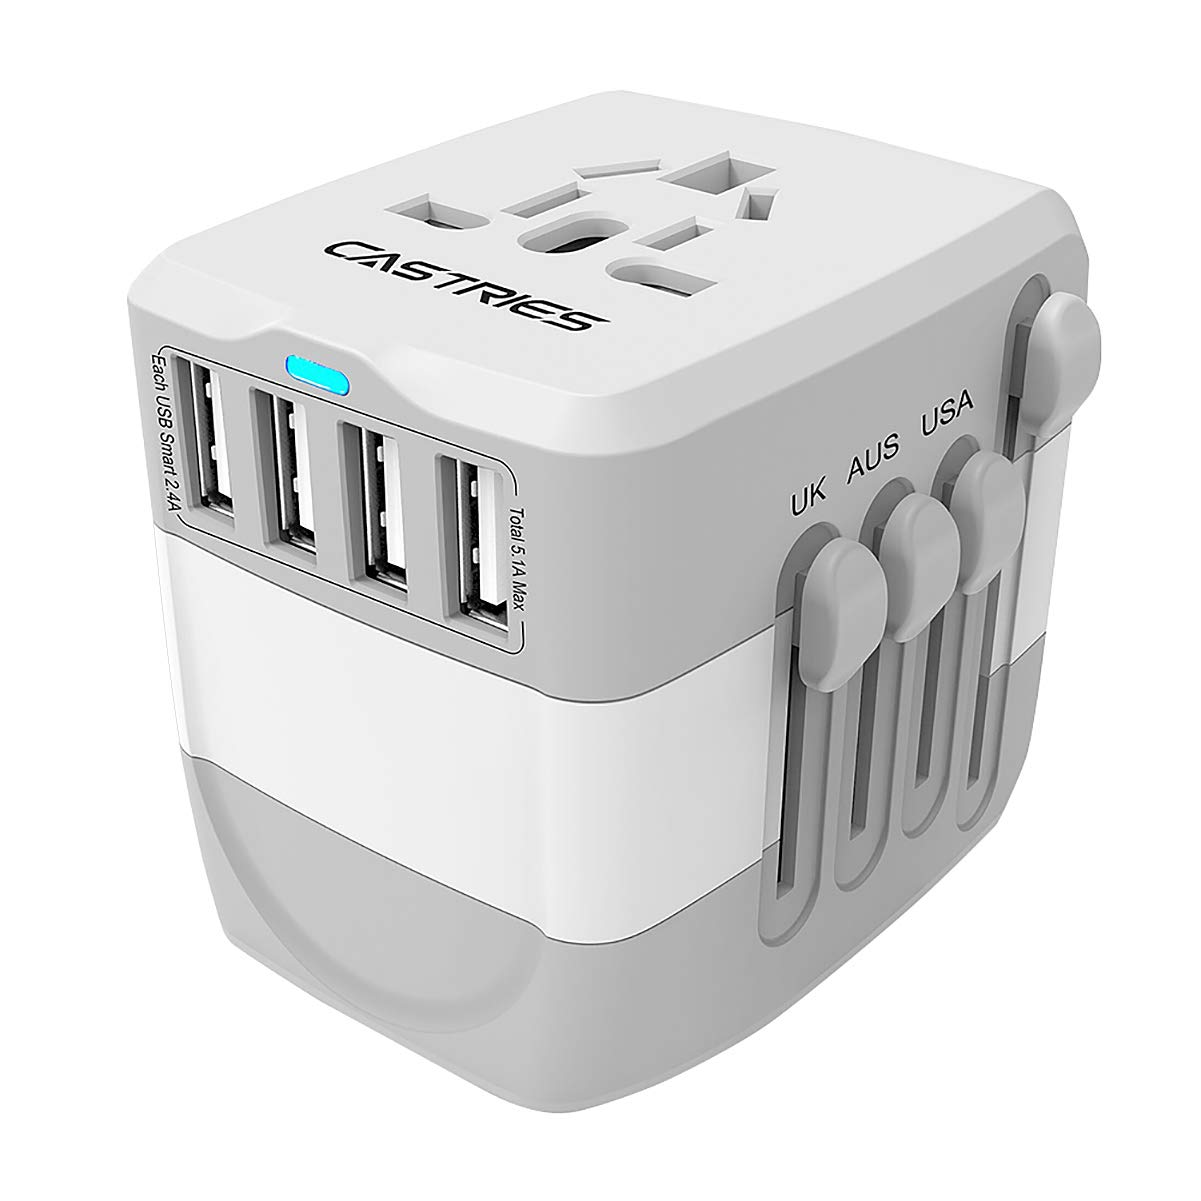 Castries European Adapter,2300W high Power Travel Adapter with 4 USB Charging Ports for International Power adapters in More Than 170 Countries (Gray White)